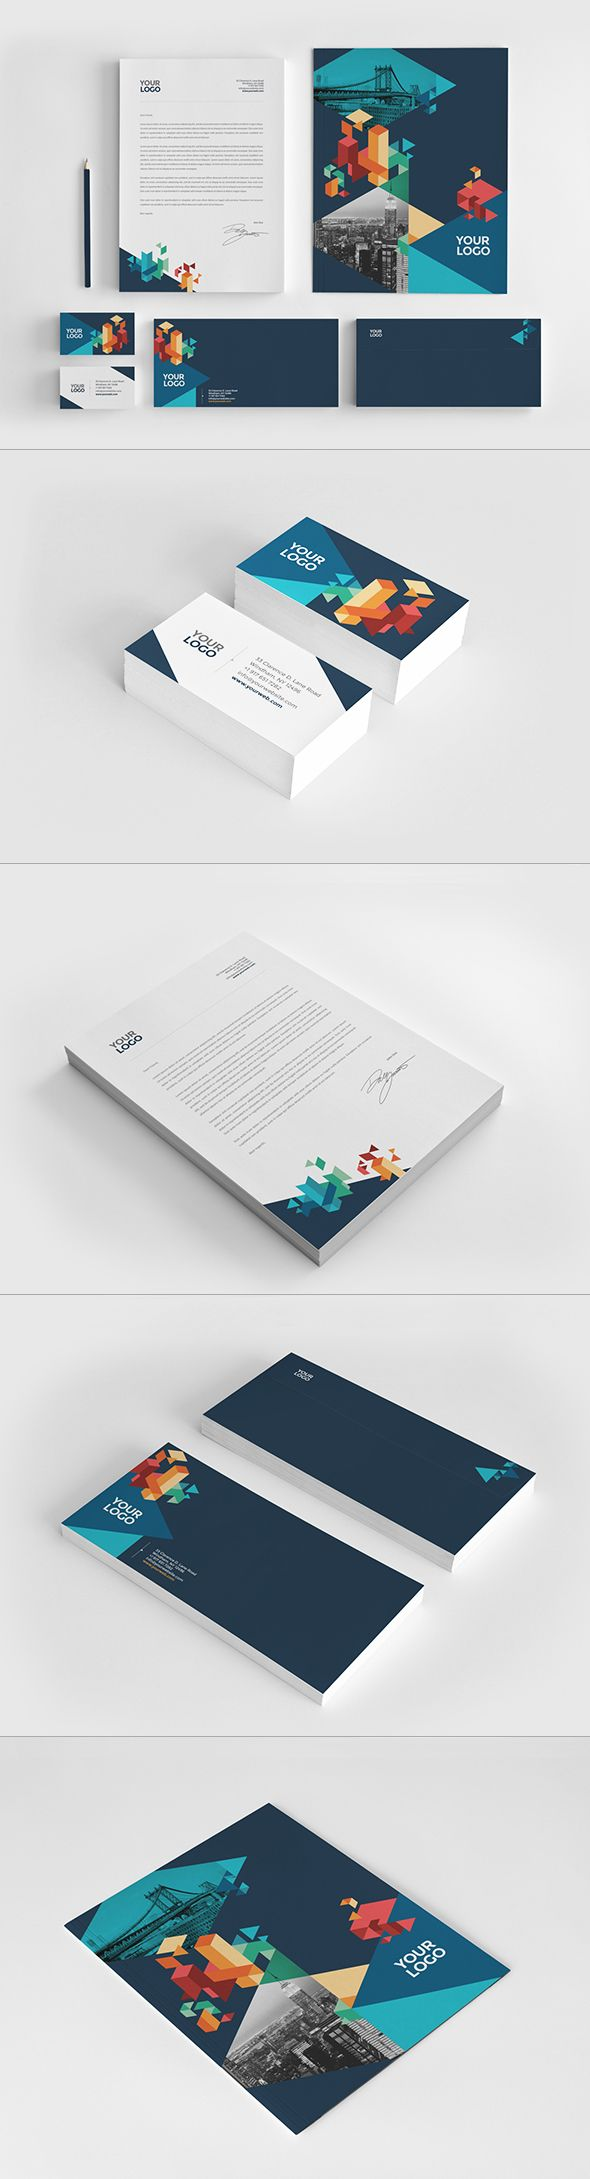 Colorful Blue Stationery. Download here: http://graphicriver.net/item/colorful-blue-stationery/11404263?ref=abradesign #stationery #design